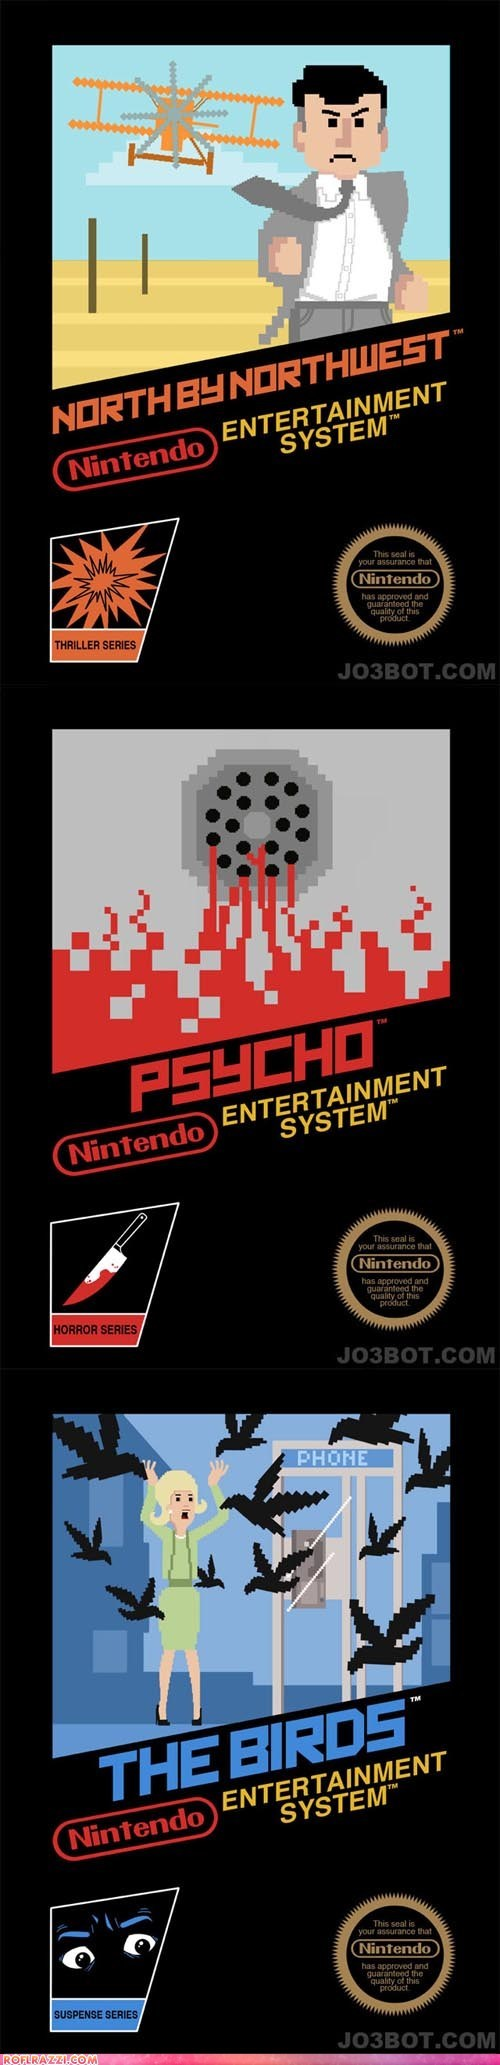 alfred hitchcock,art,awesome,cool,funny,games,Movie,nintendo